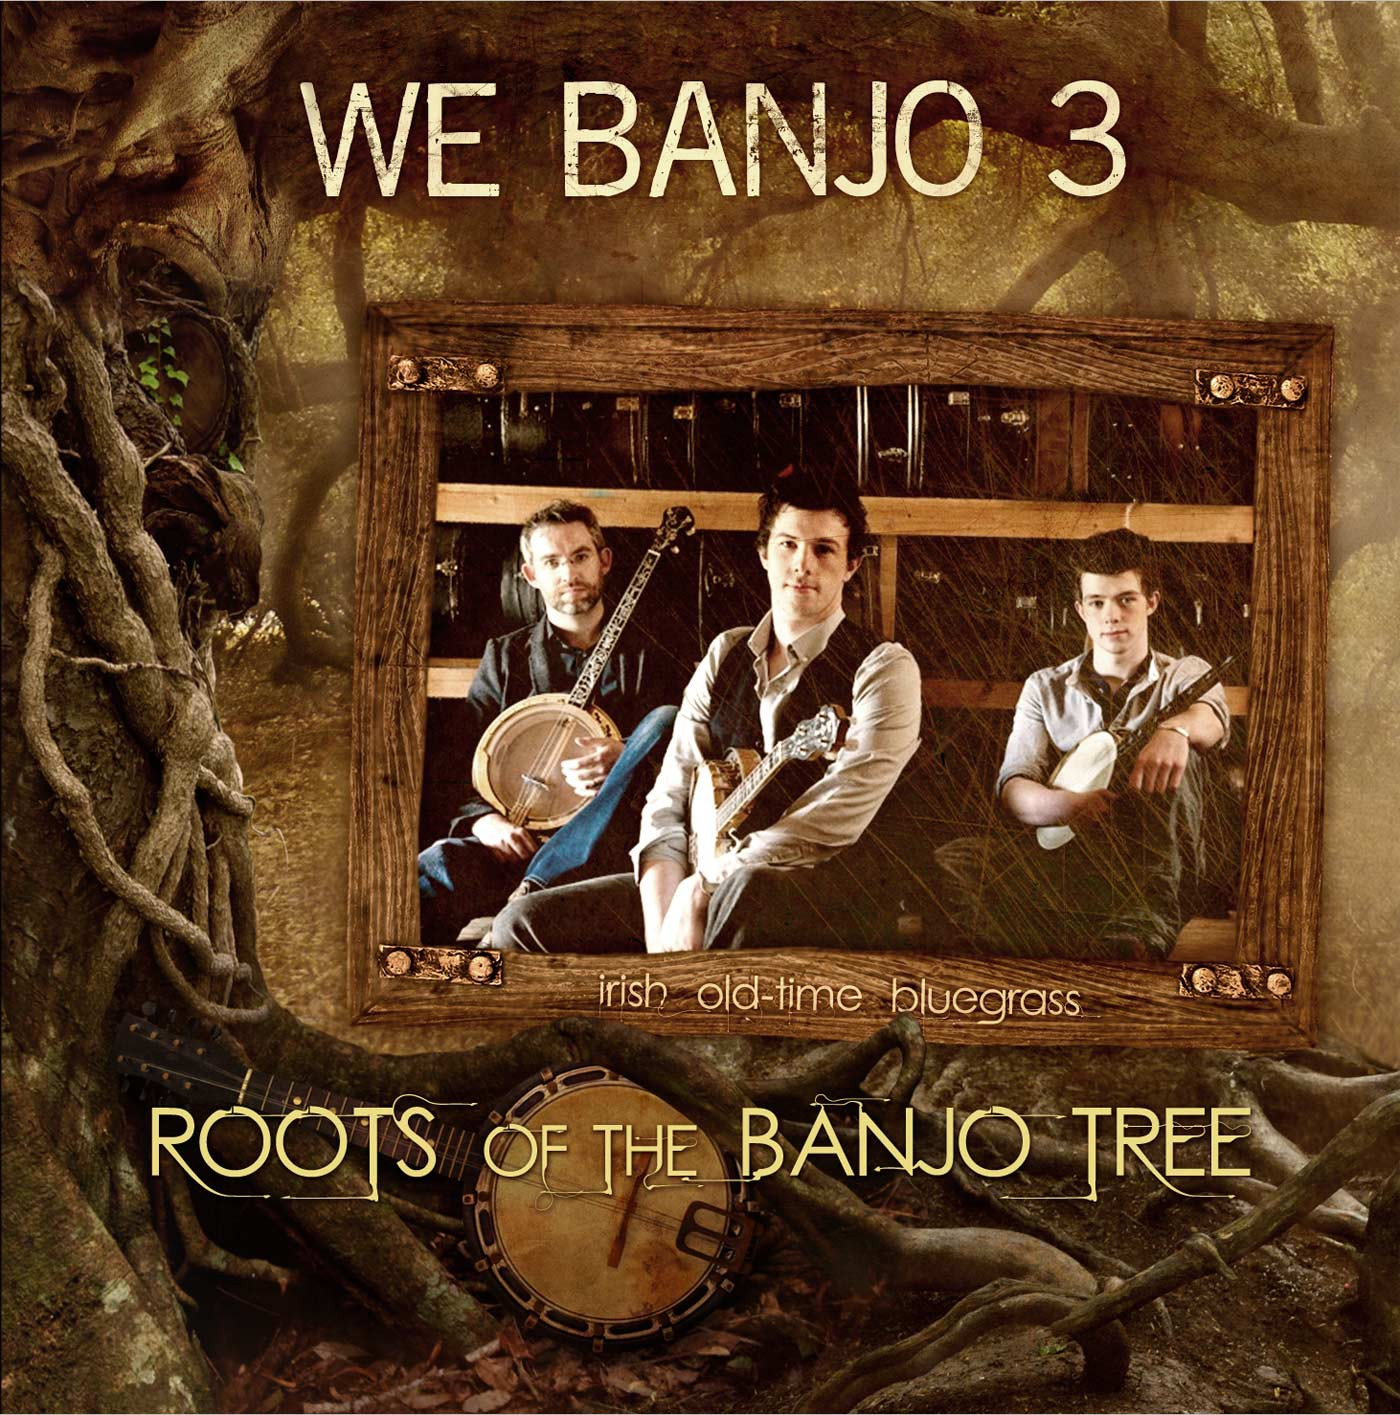 New design wanted for We Banjo 3